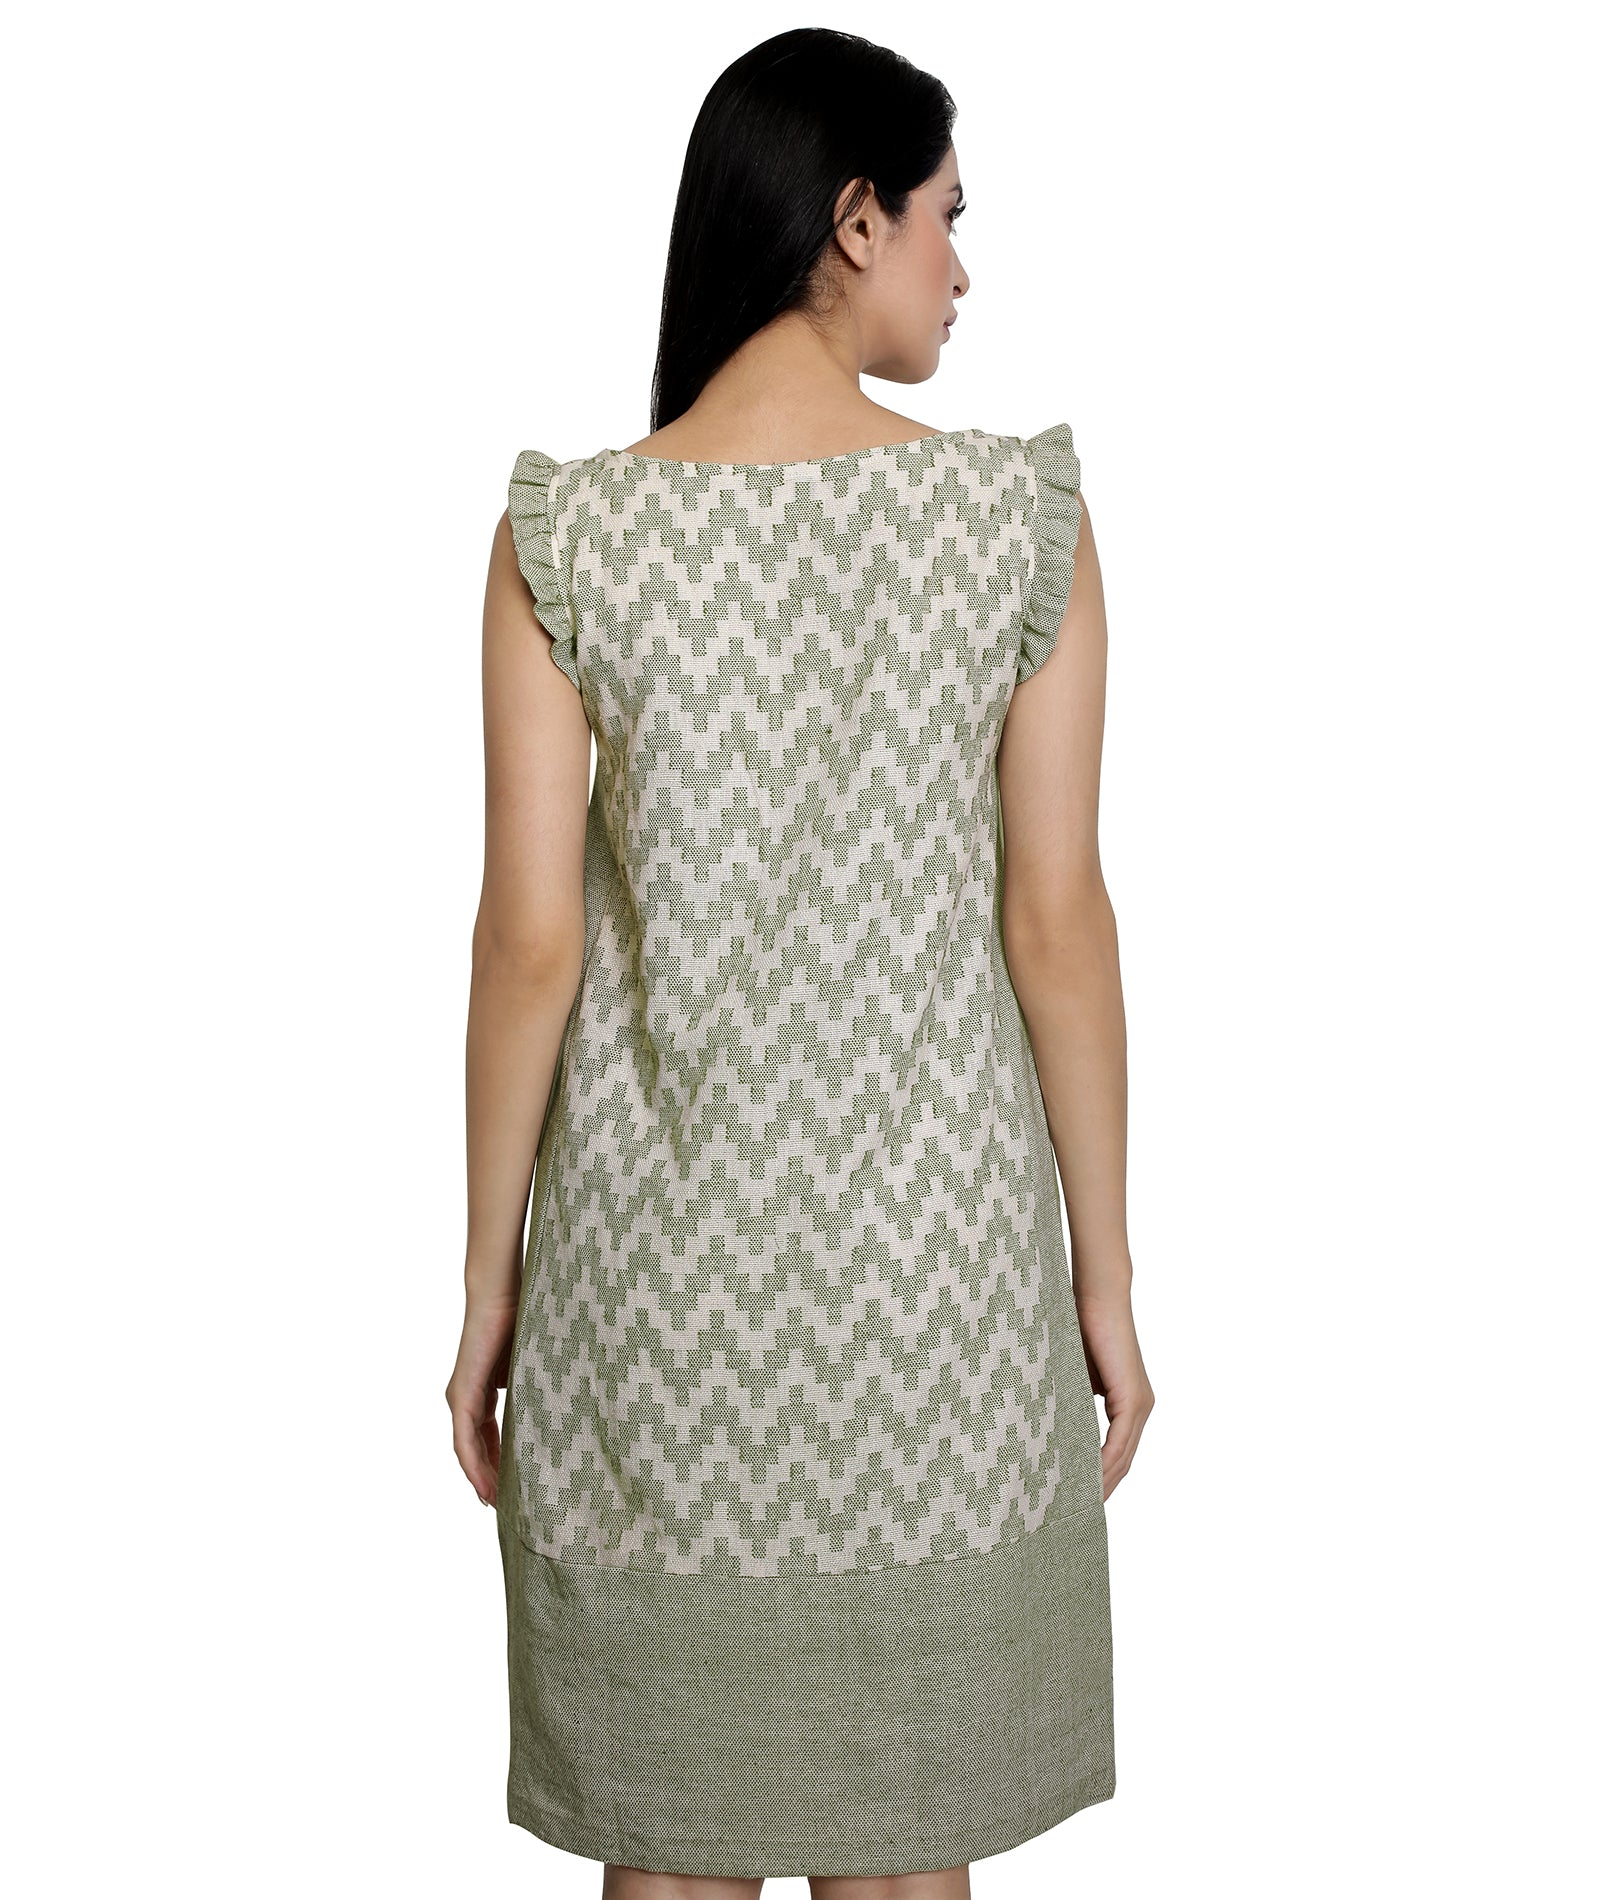 Benarasi Weave Clothing for Women in India